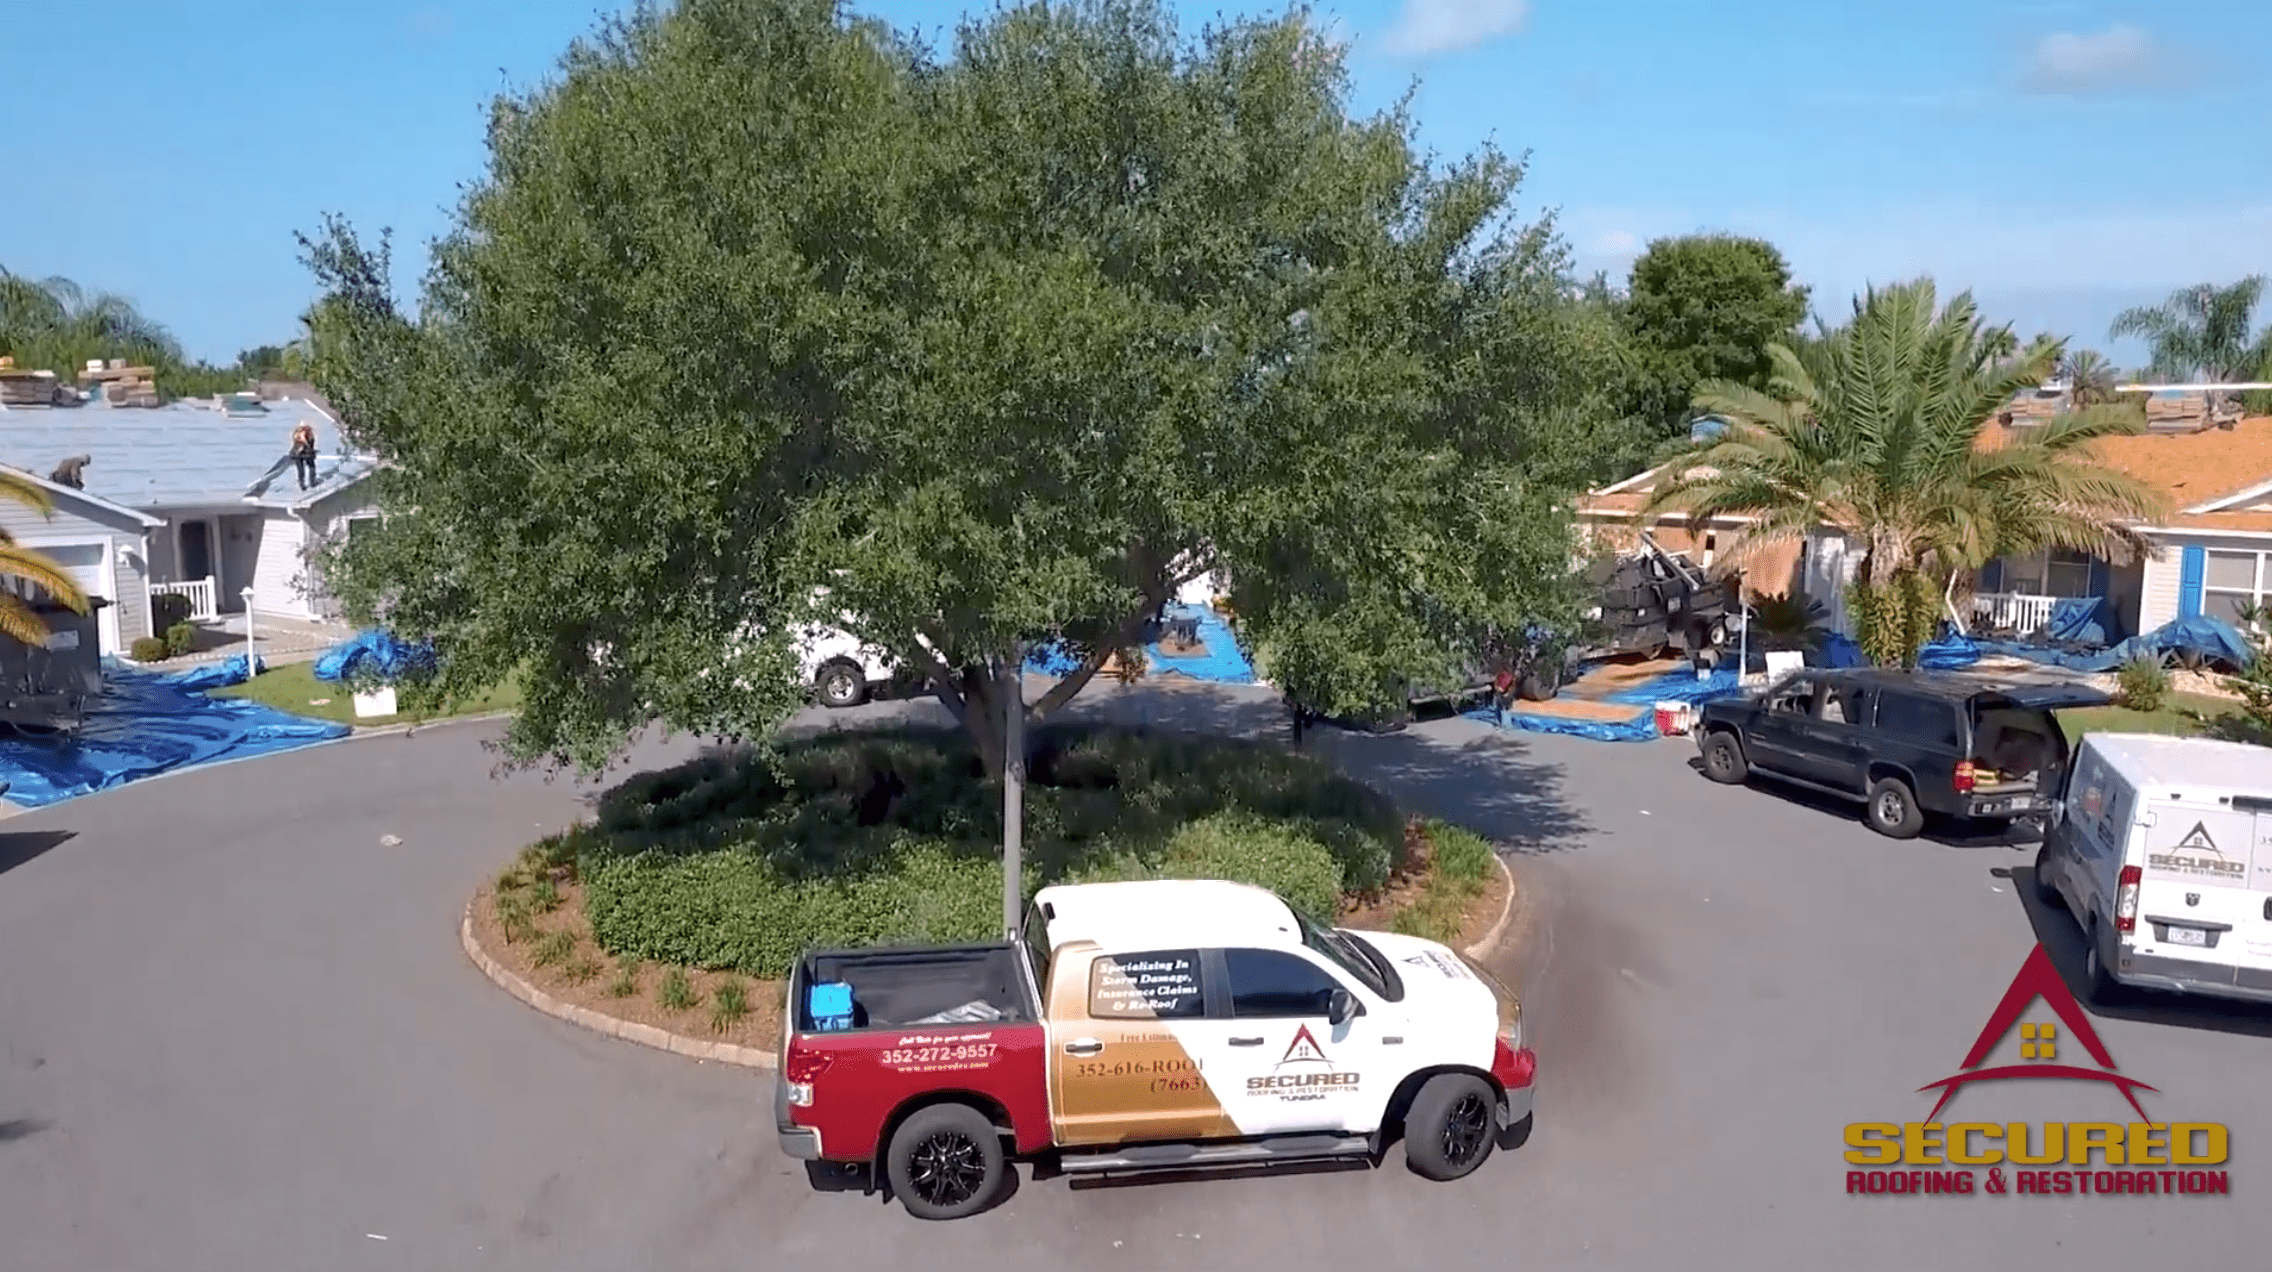 secured roofing and restoration company truck in neighborhood